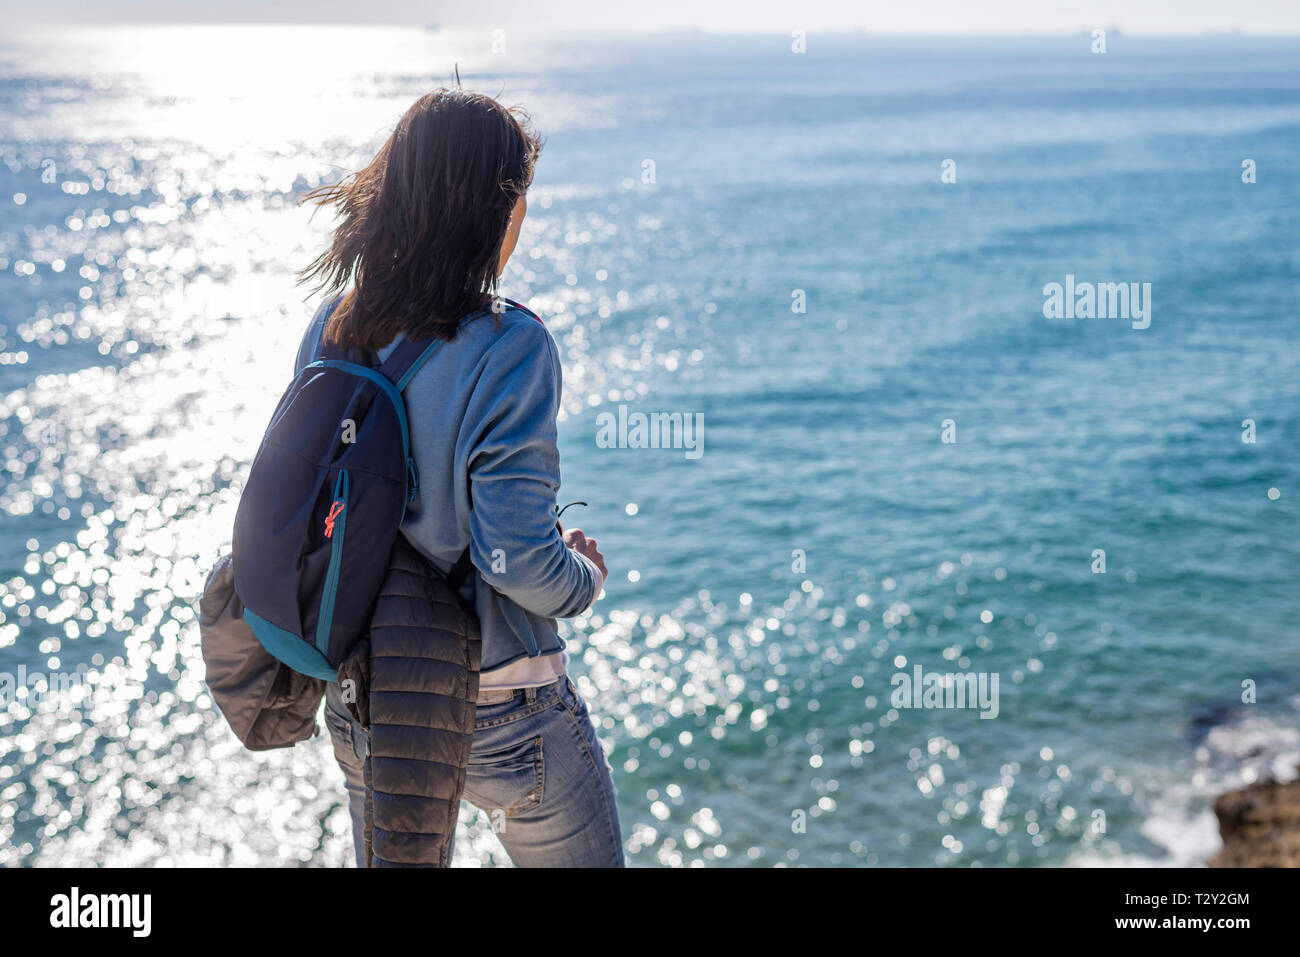 Rear view of a woman standing while contemplating the sea view - Stock Image